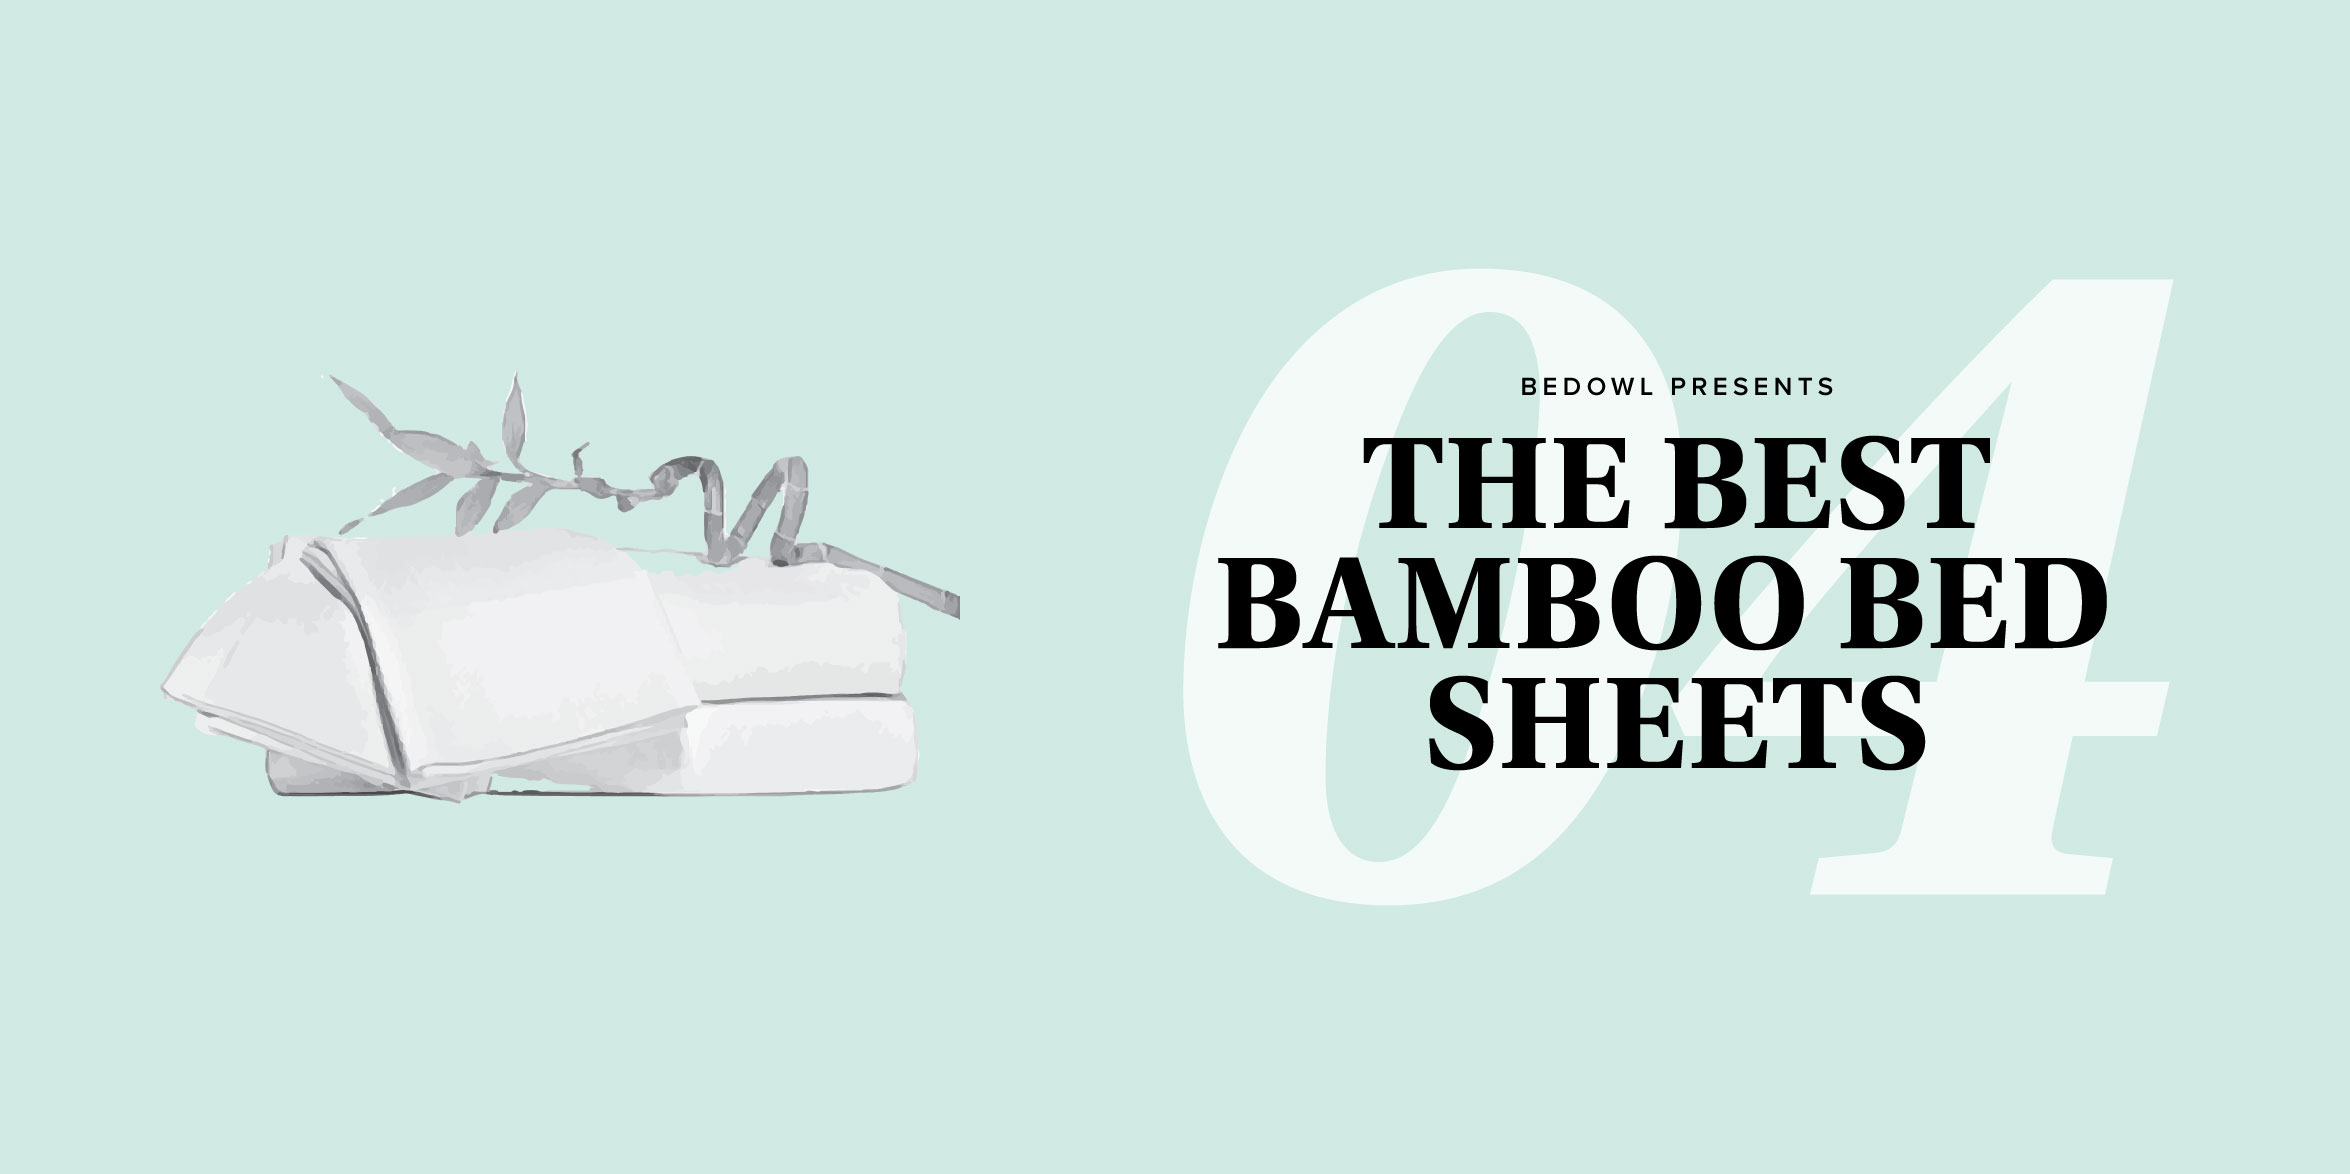 The Best Bamboo Sheets for 2017 by Bedowl